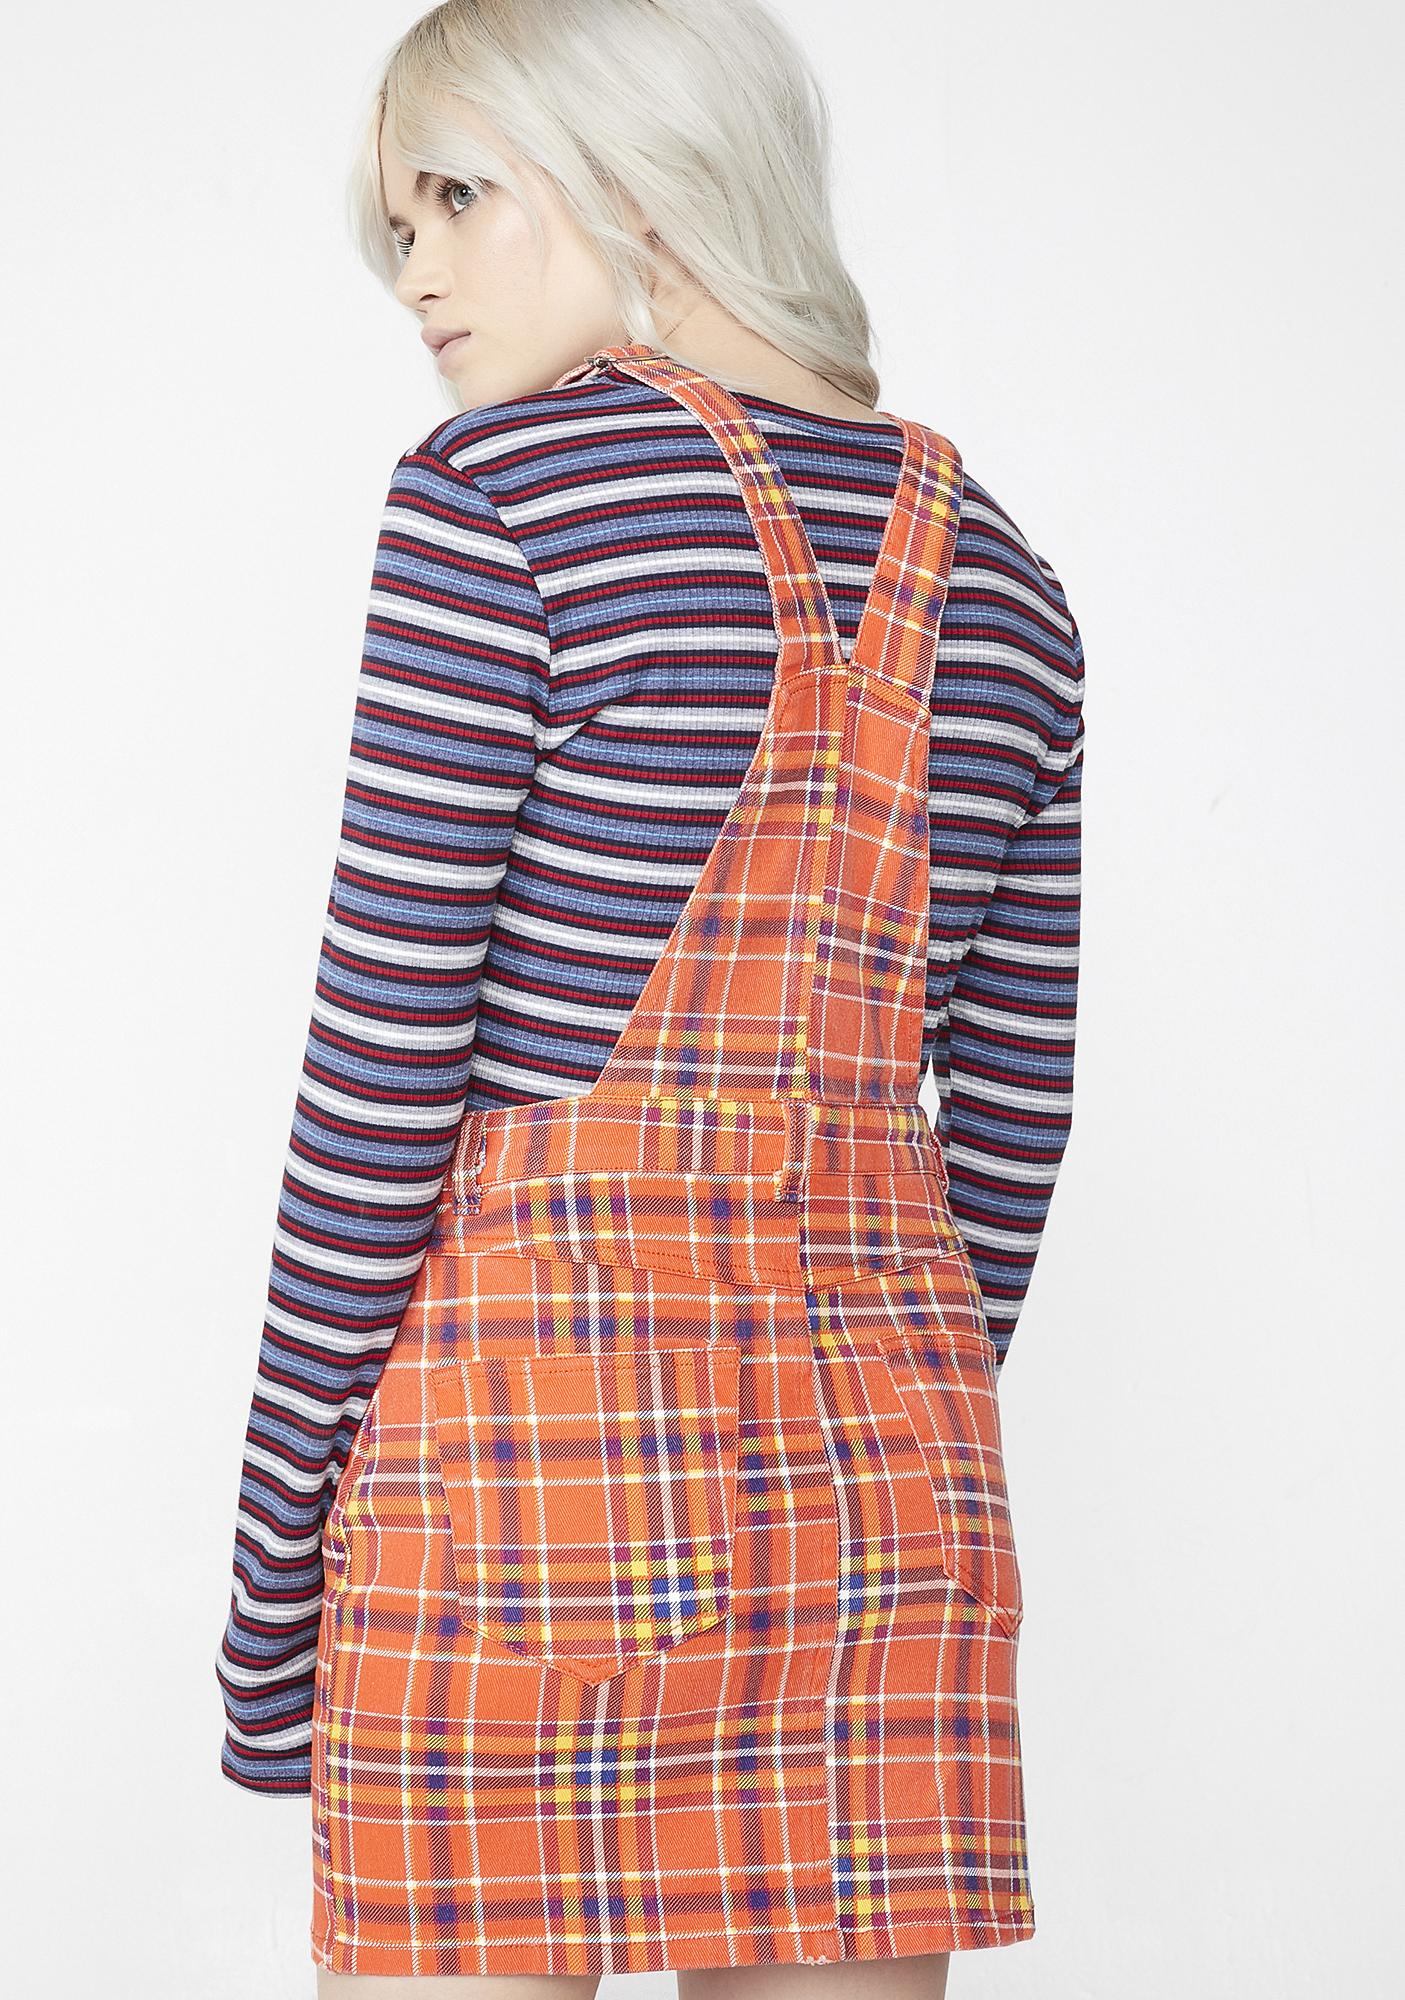 Charmed Cutie Overall Dress